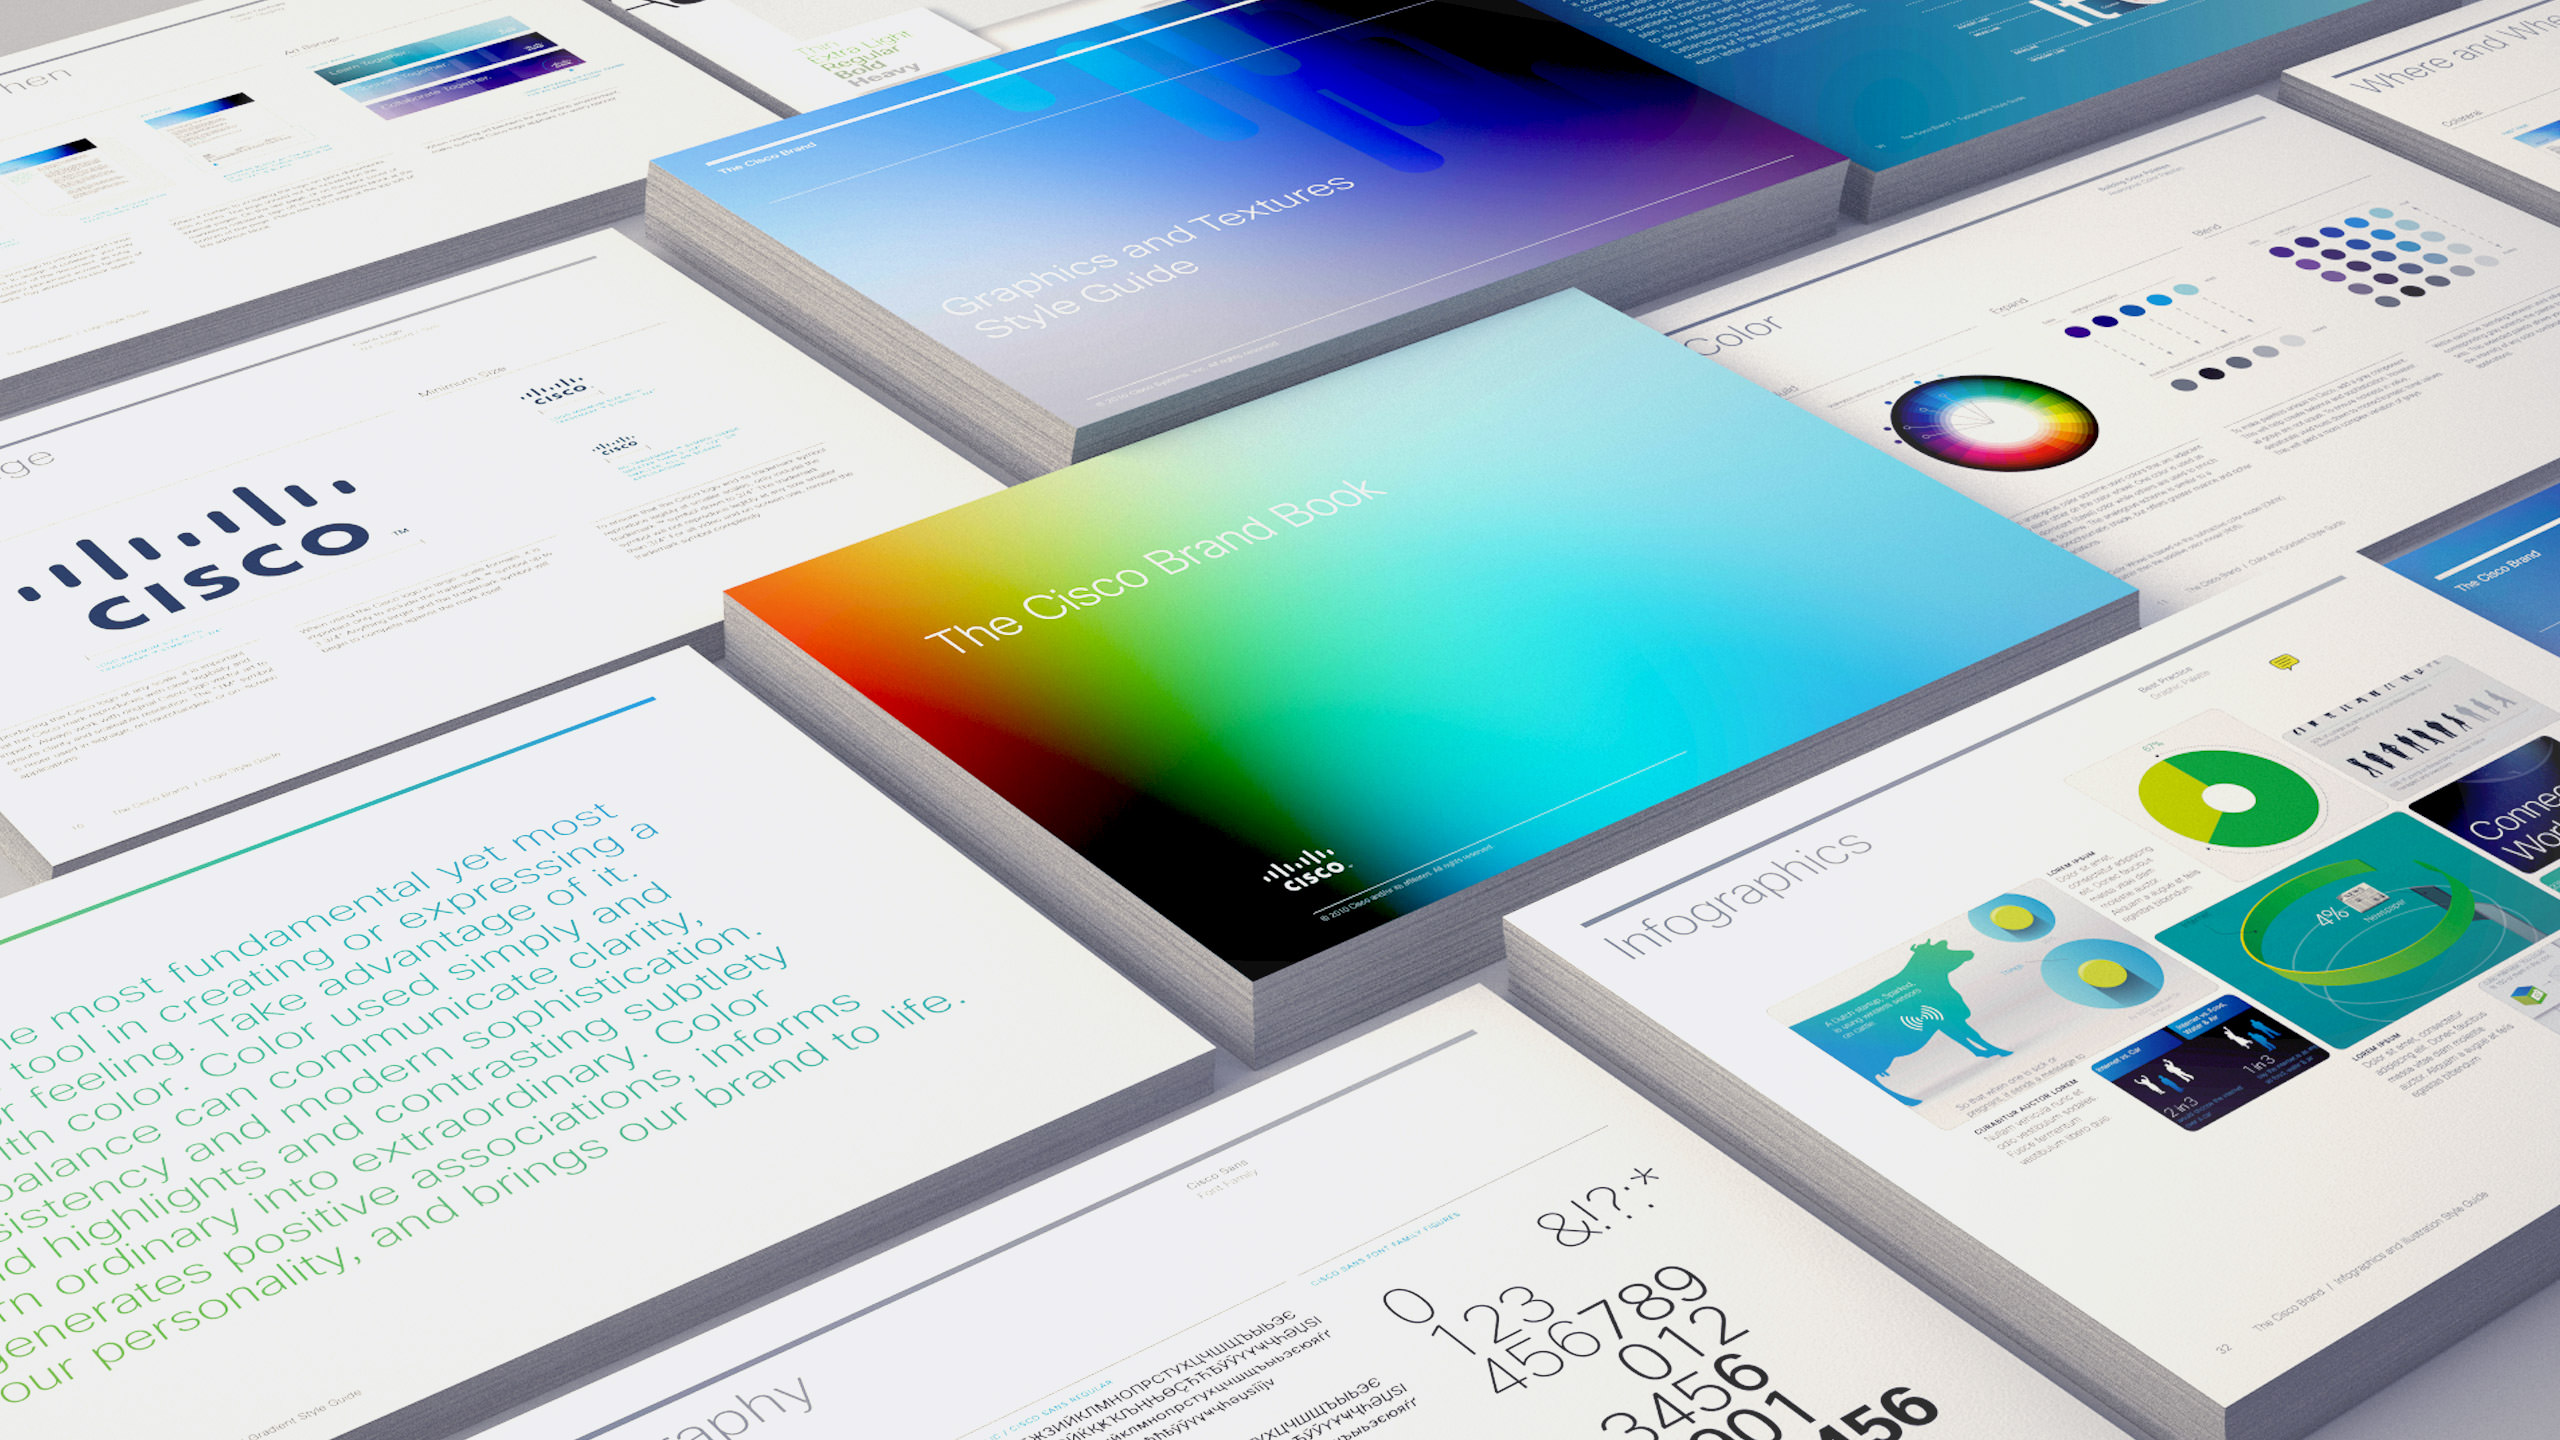 Stacks of pages from Cisco Brand Guidelines